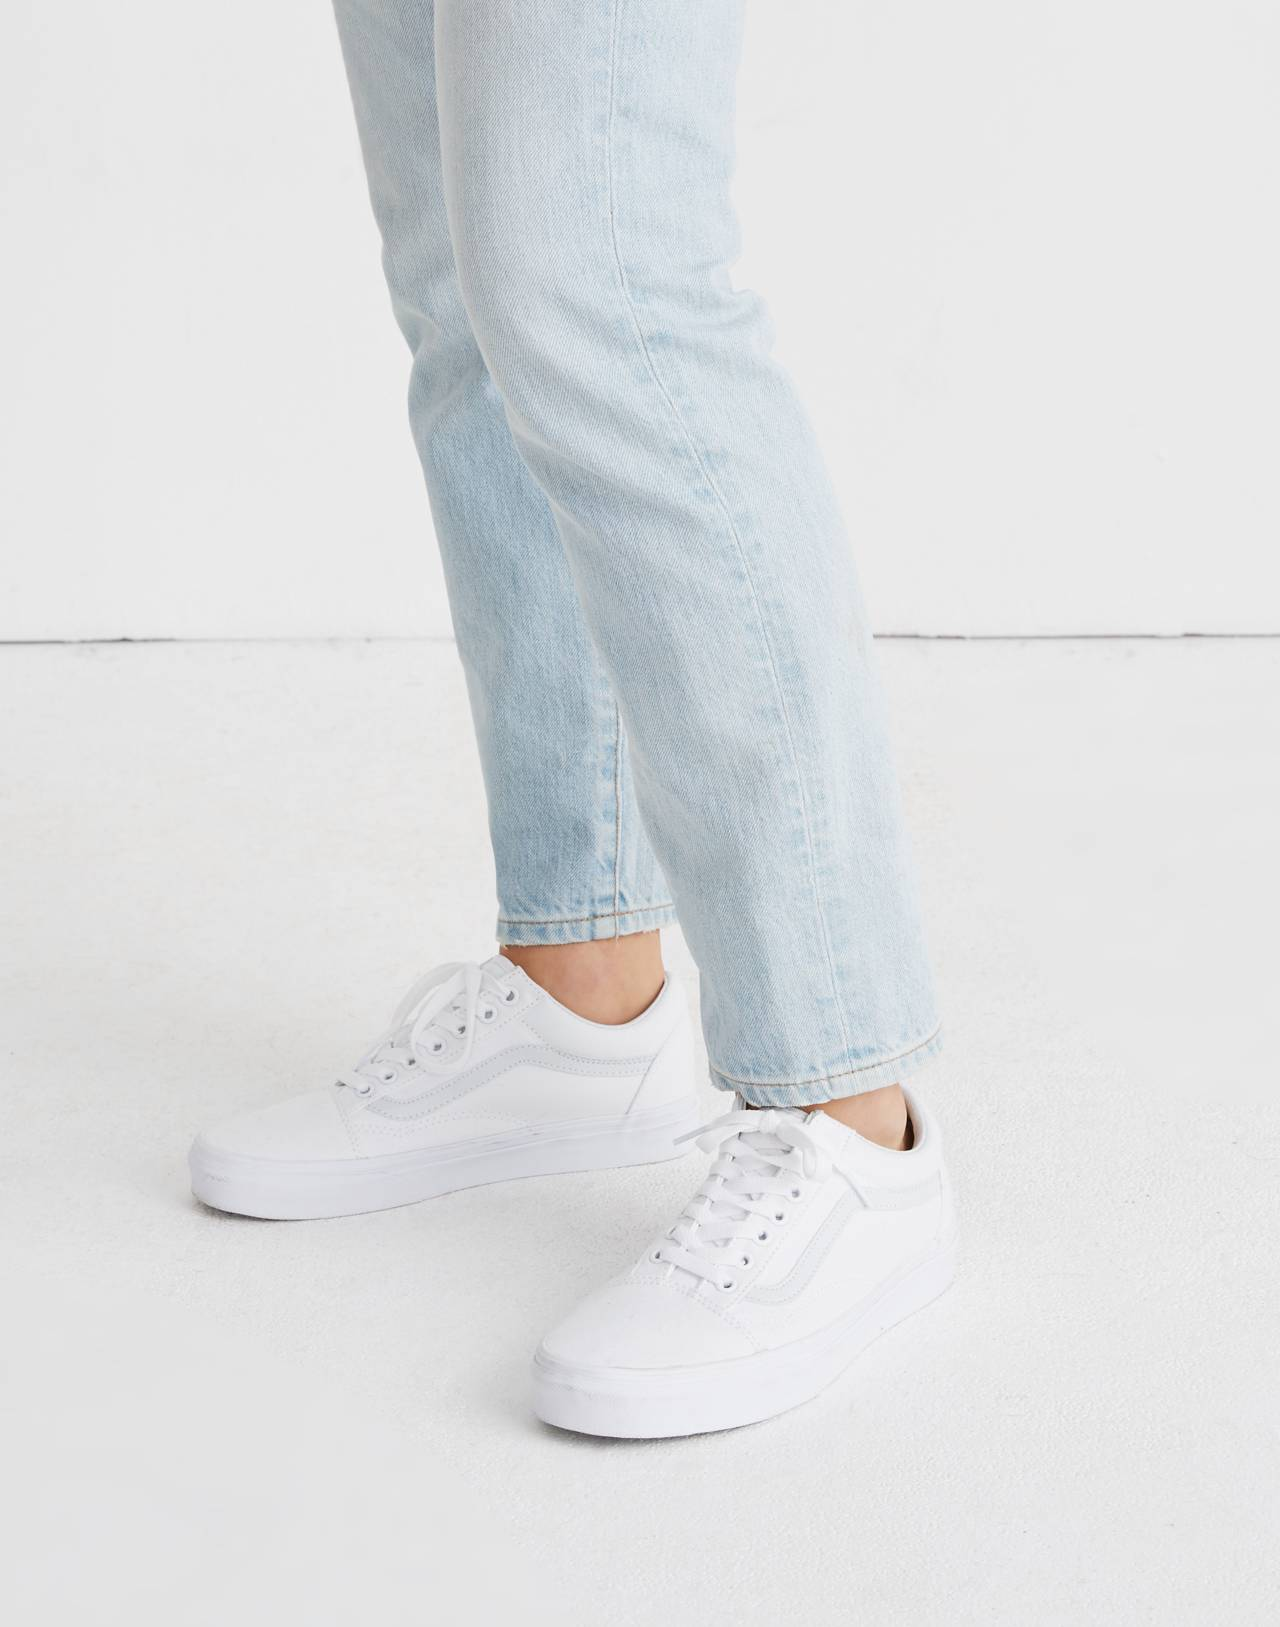 Vans® Unisex Old Skool Lace-Up Sneakers in Canvas and Suede in true white image 2